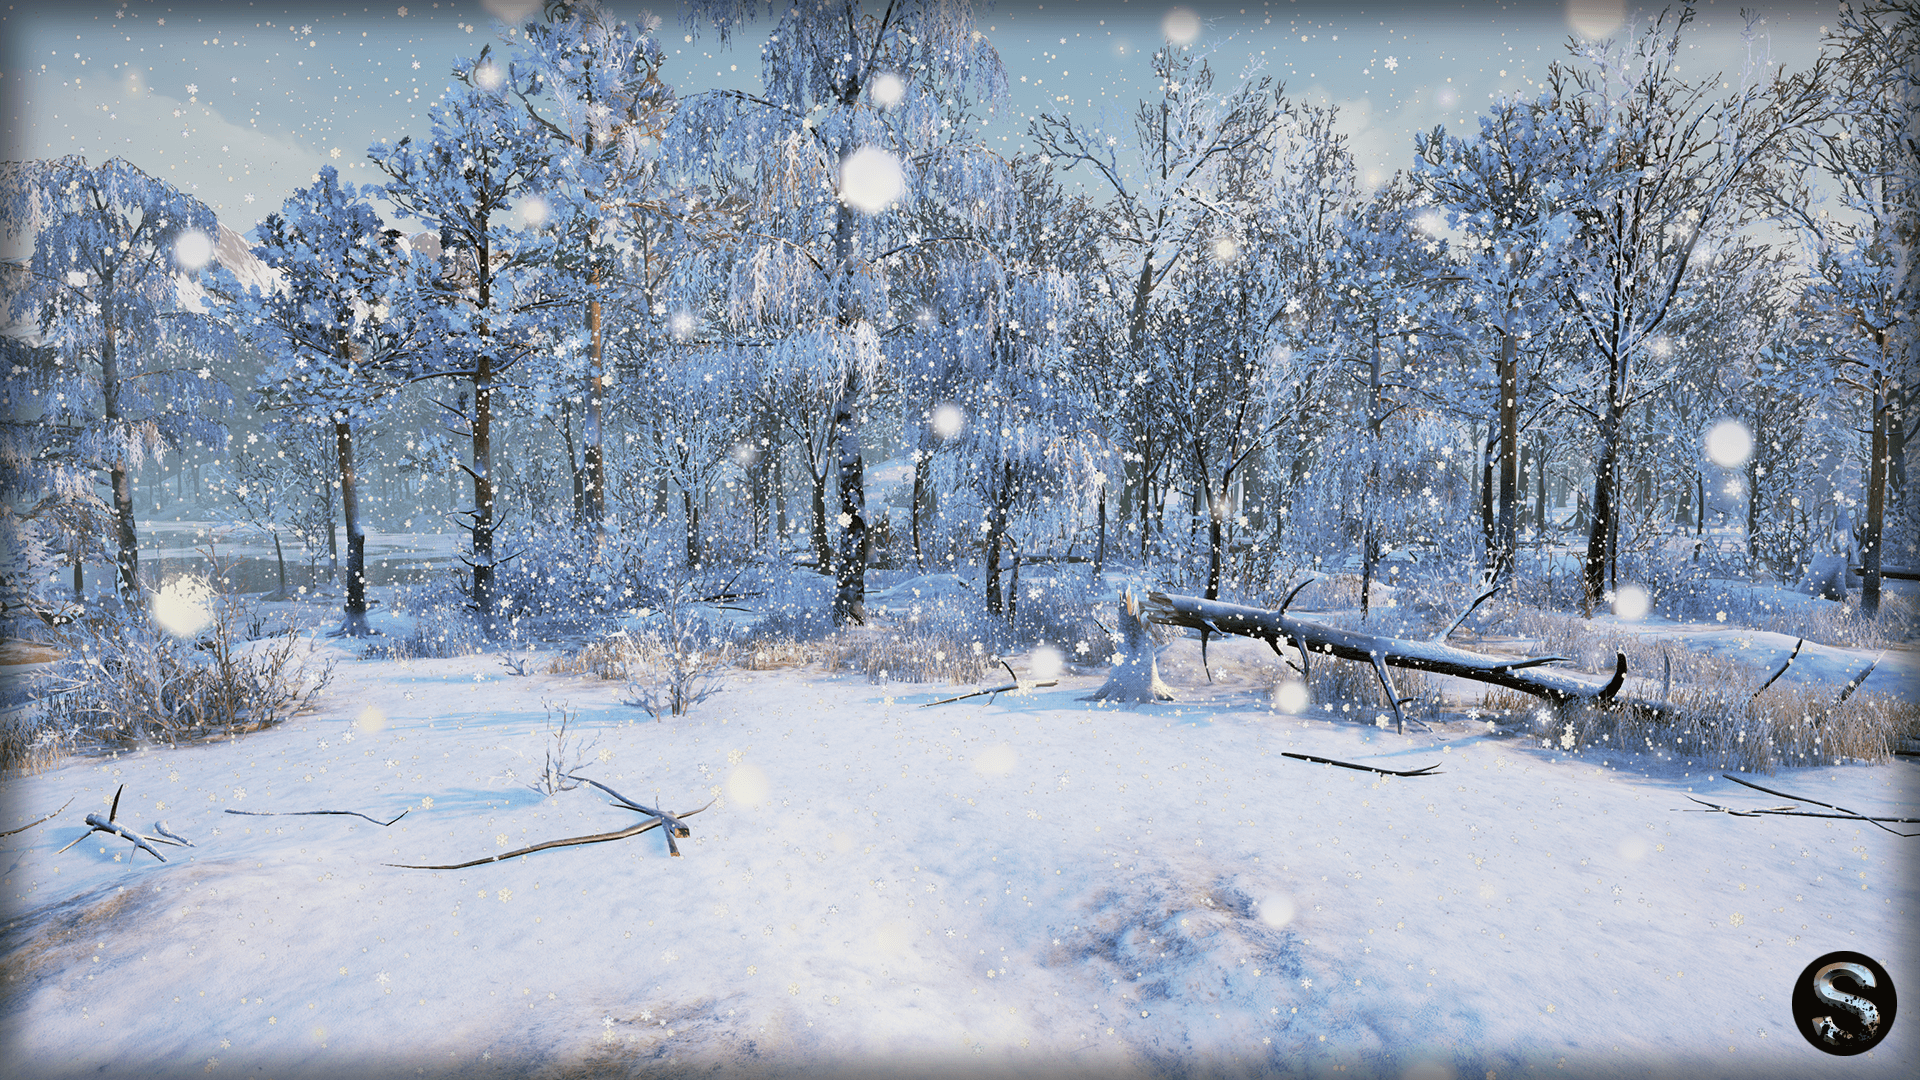 Store_WinterNature_screenshot_05-1920x1080-9668a3ebfcb97c517cd1585596a6f186.png